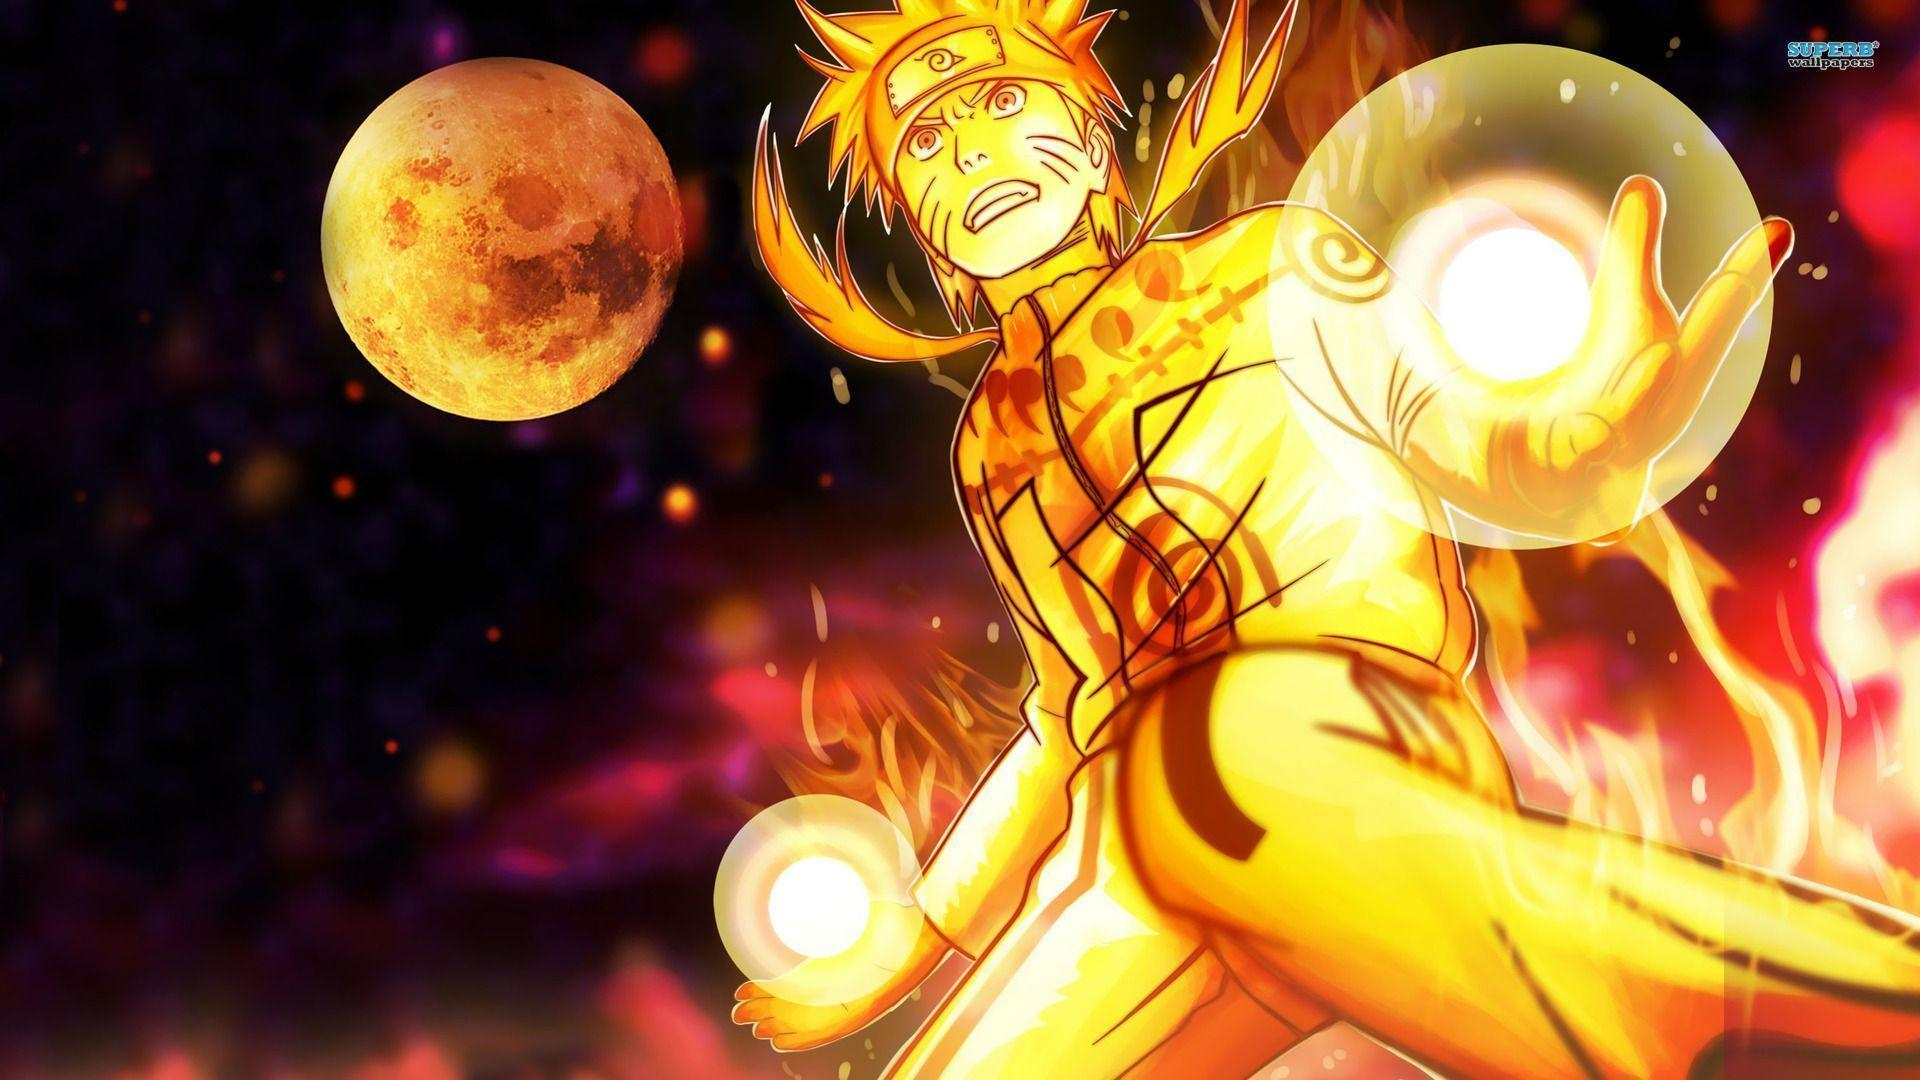 Wallpapers For > Naruto Kyuubi Wallpapers 1920x1080